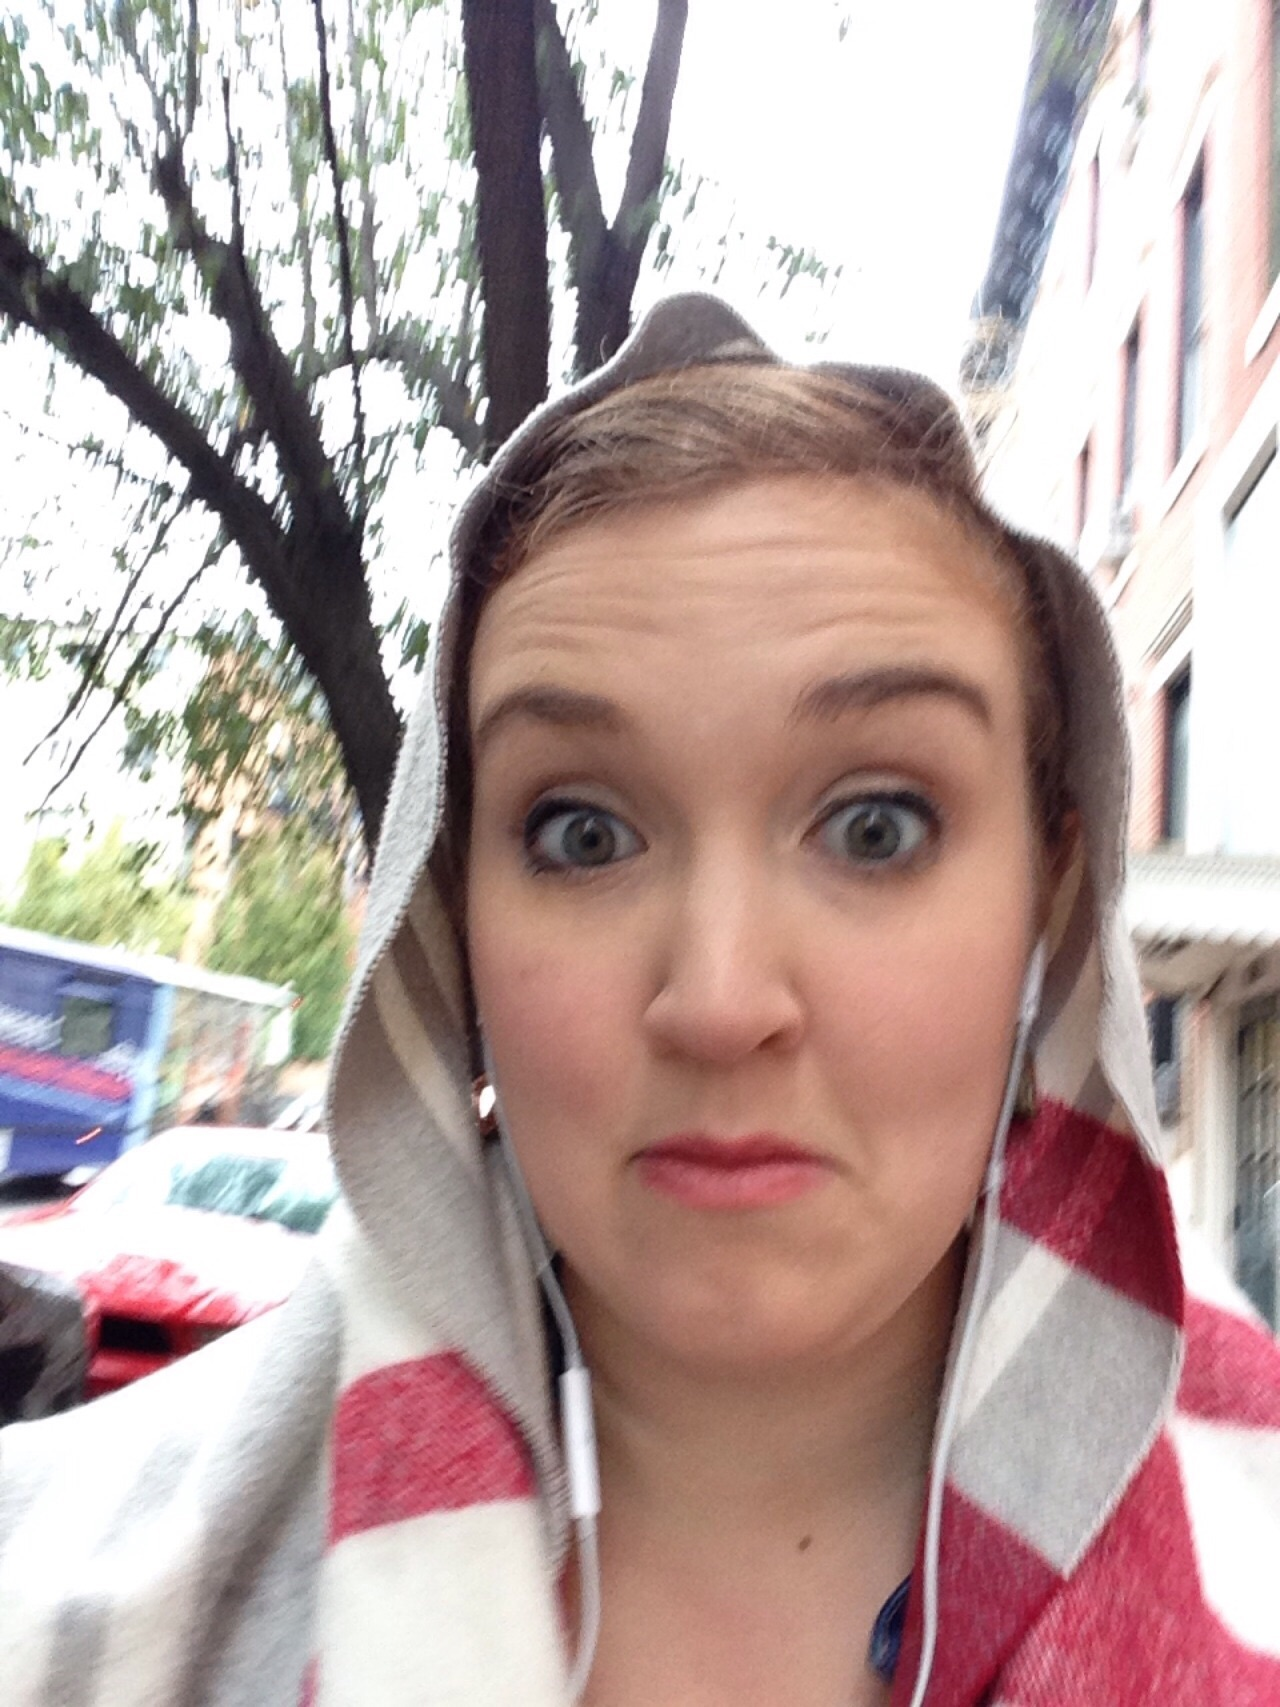 My rainy day selfie on my way to Chorus auditions for Baltimore Lyric Opera.